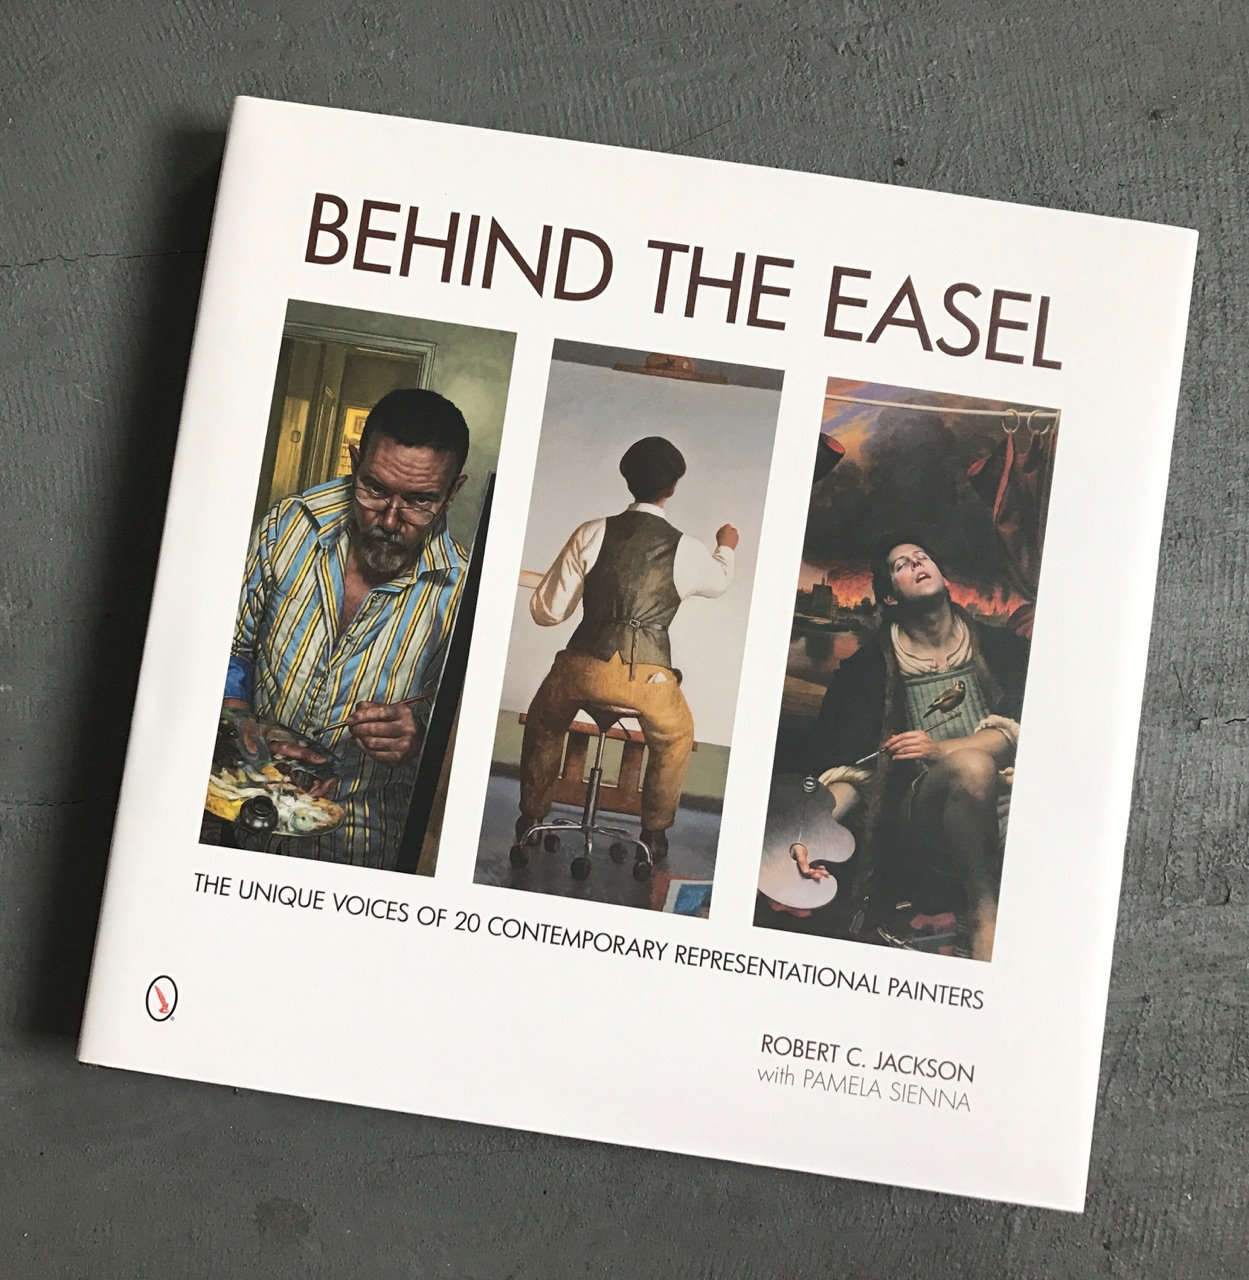 Behind the Easel The Unique Voices of 20 Contemporary Representational Artists